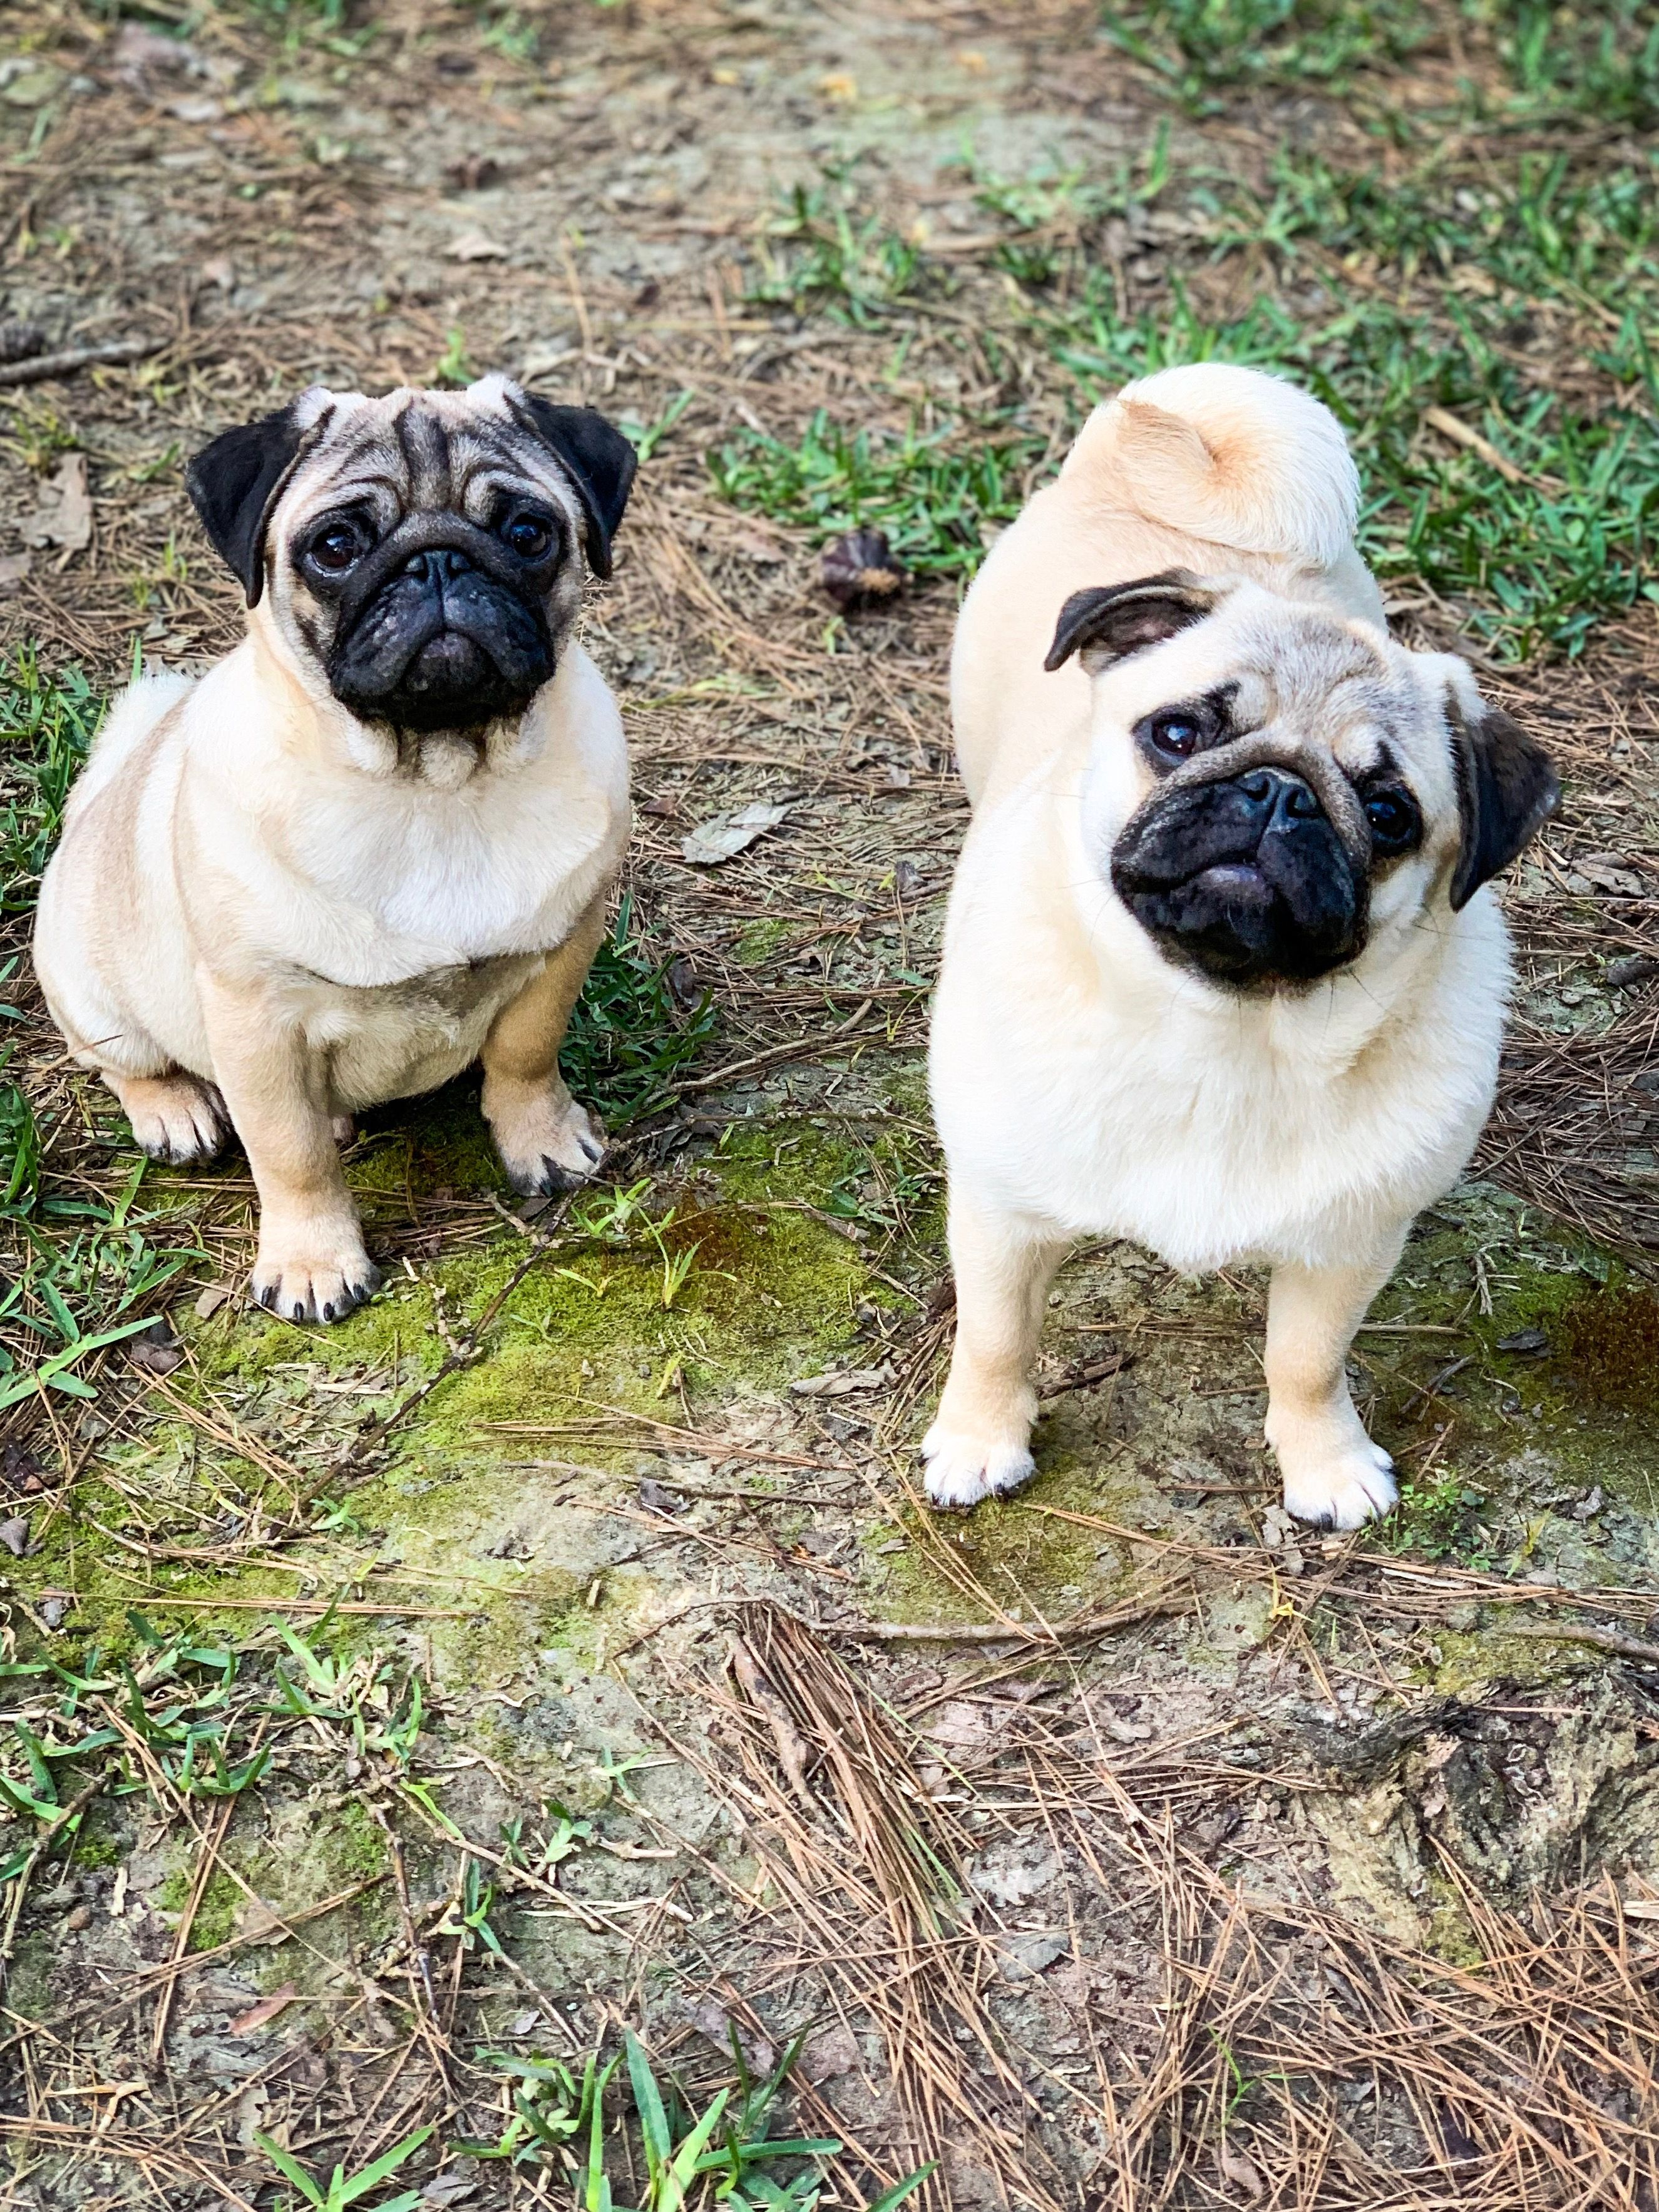 Best Pug Friends Forever Pugs Funny Pugs Dogs And Puppies